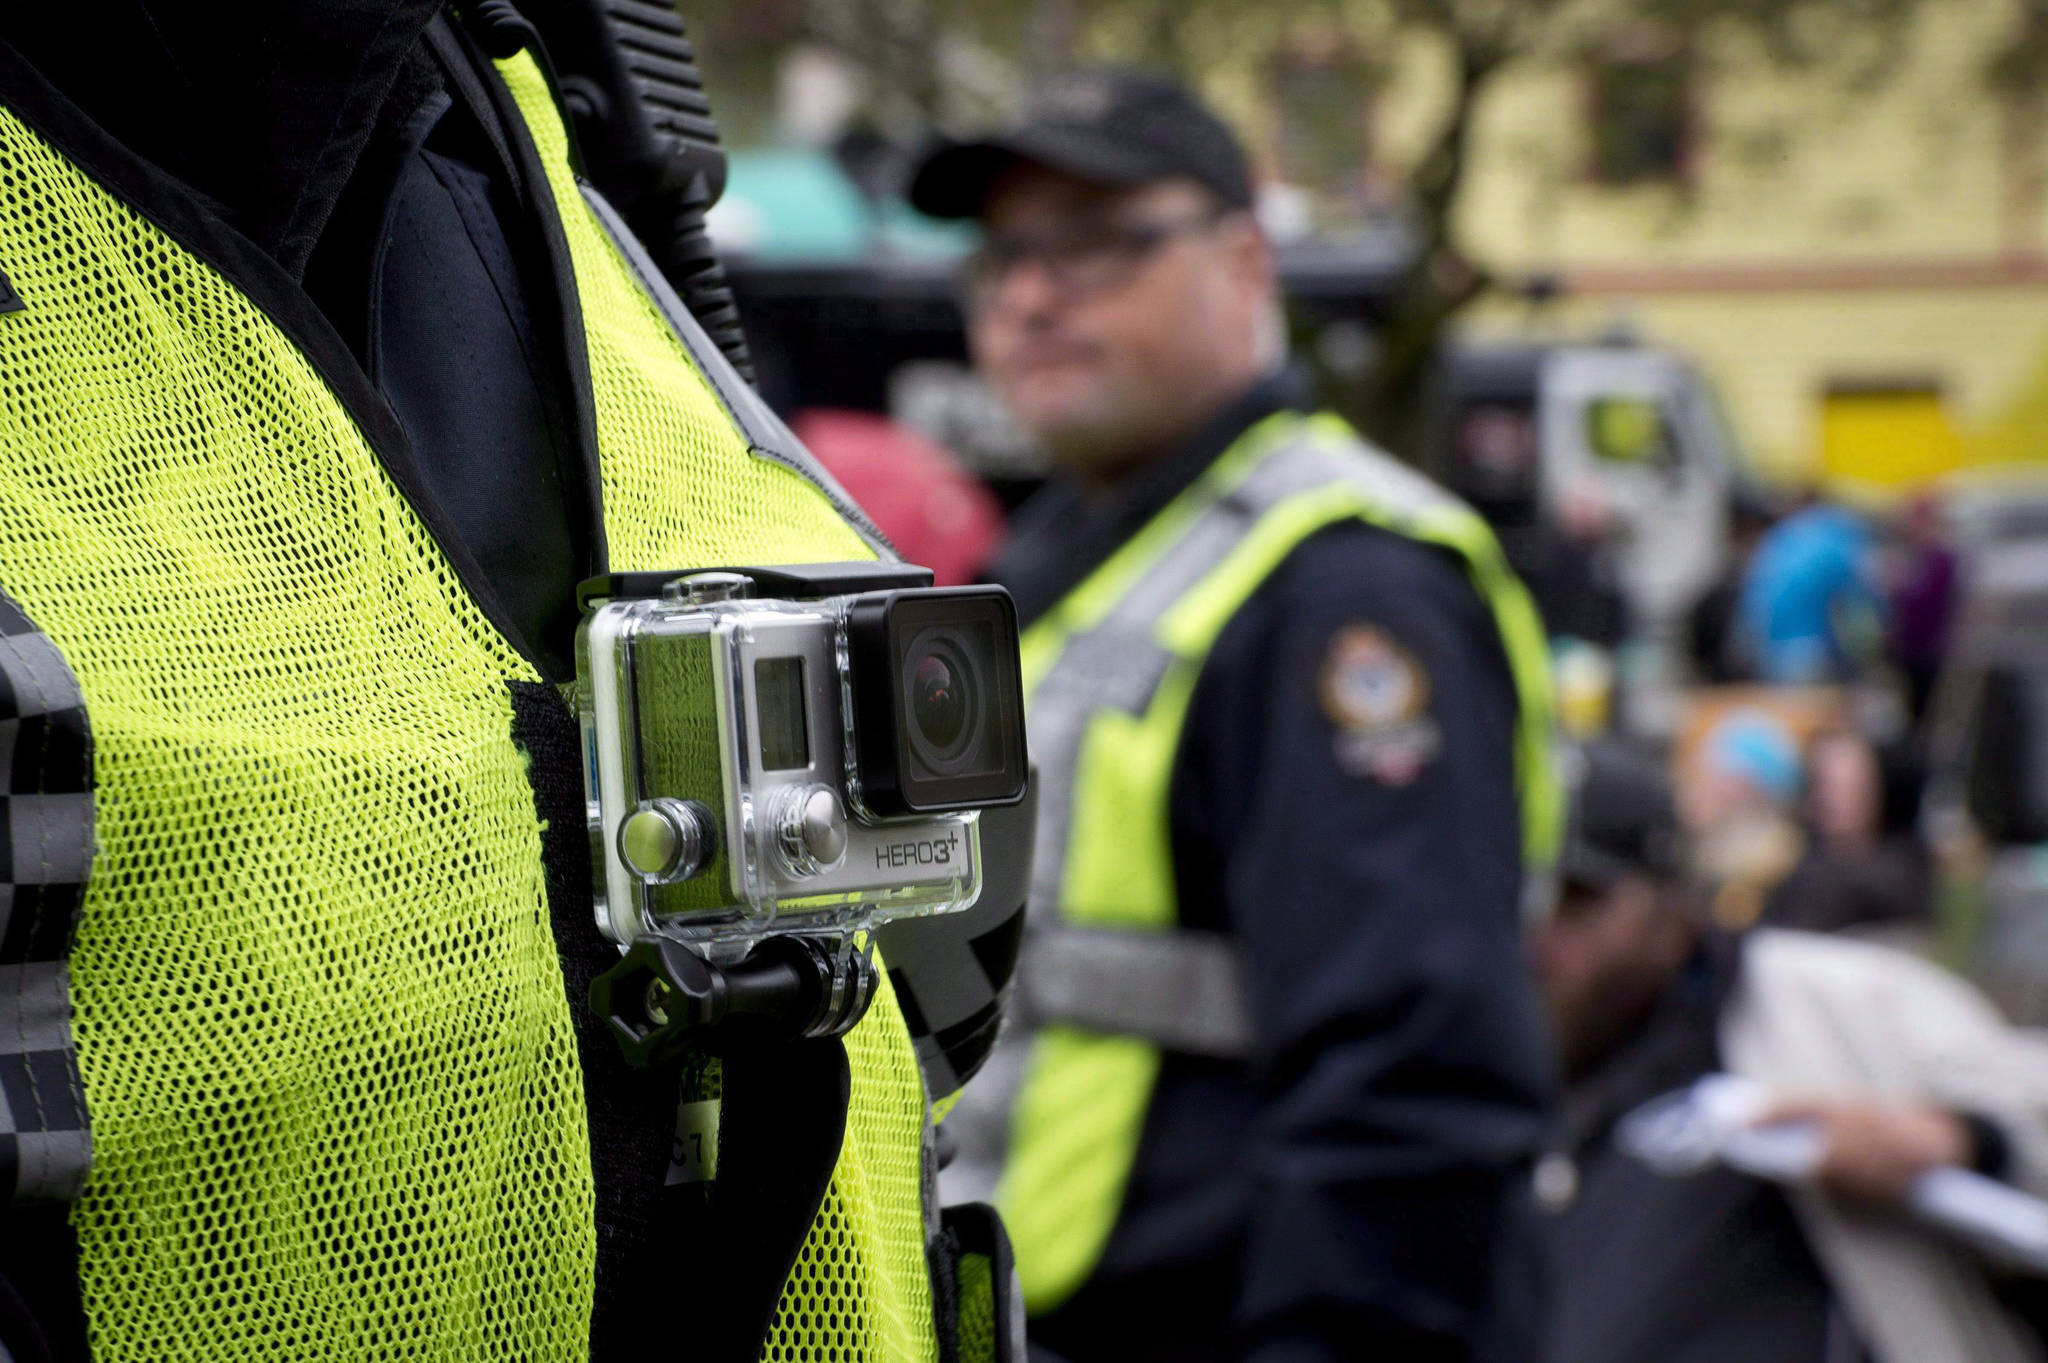 The mayor of Iqaluit is joining other Arctic leaders in a call to have RCMP members in Nunavut wear body cameras. A member of the Vancouver Police Department wears a chest mounted camera as he oversees the take down of a tent city in downtown Vancouver on Oct. 16, 2014. THE CANADIAN PRESS/Jonathan Hayward